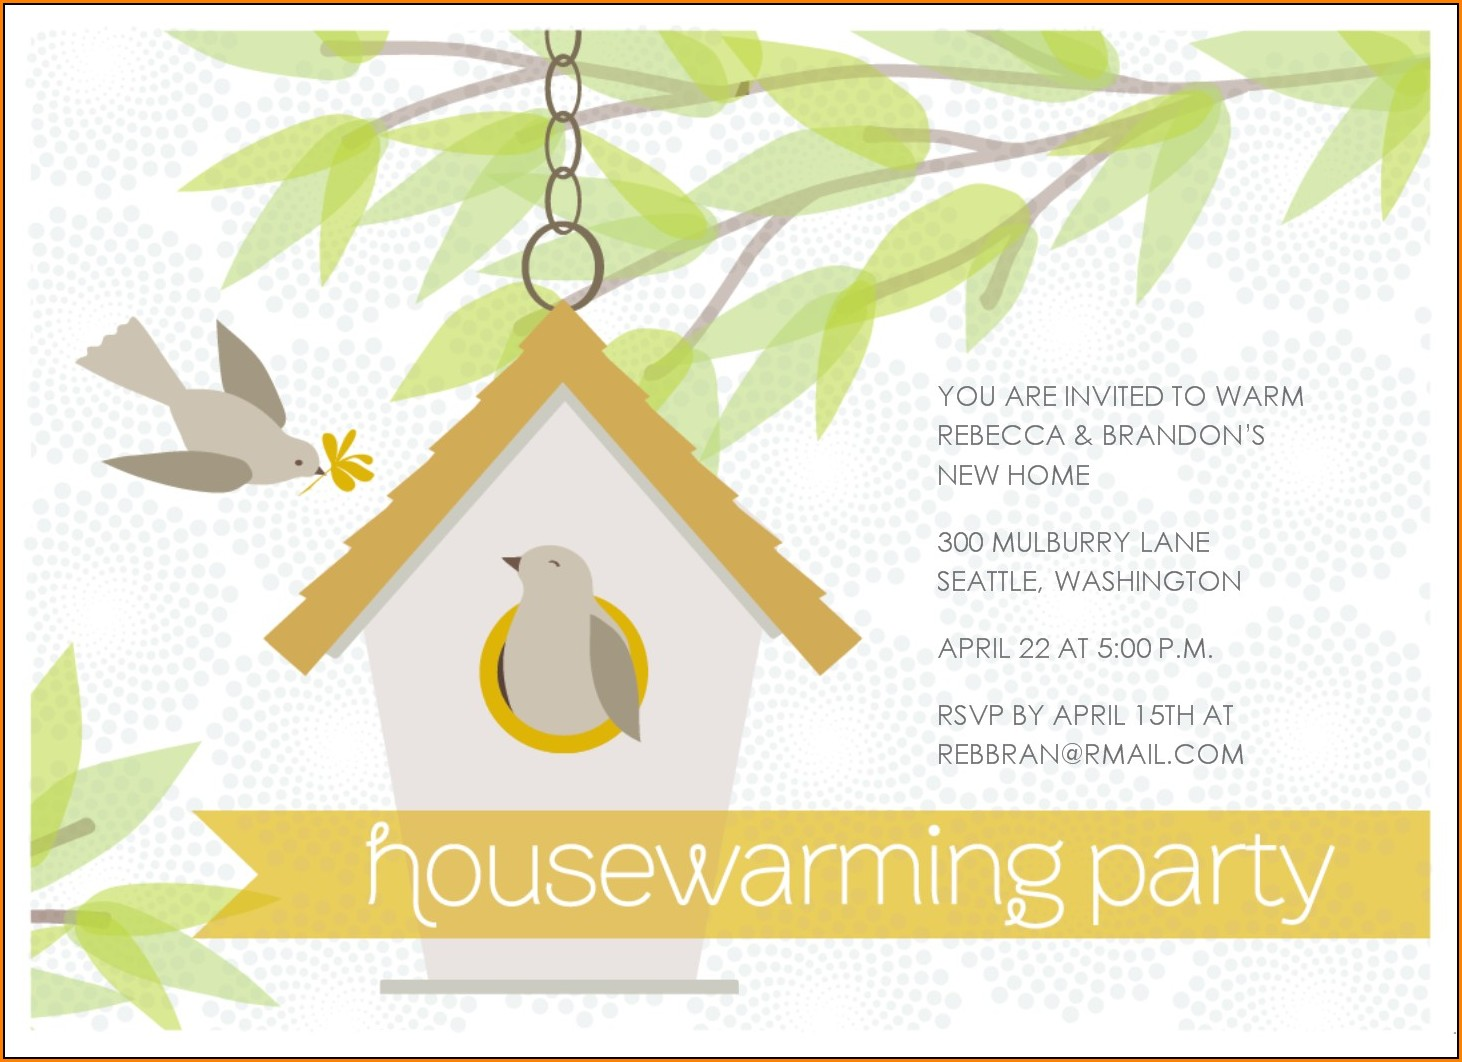 Editable Housewarming Invitation Templates